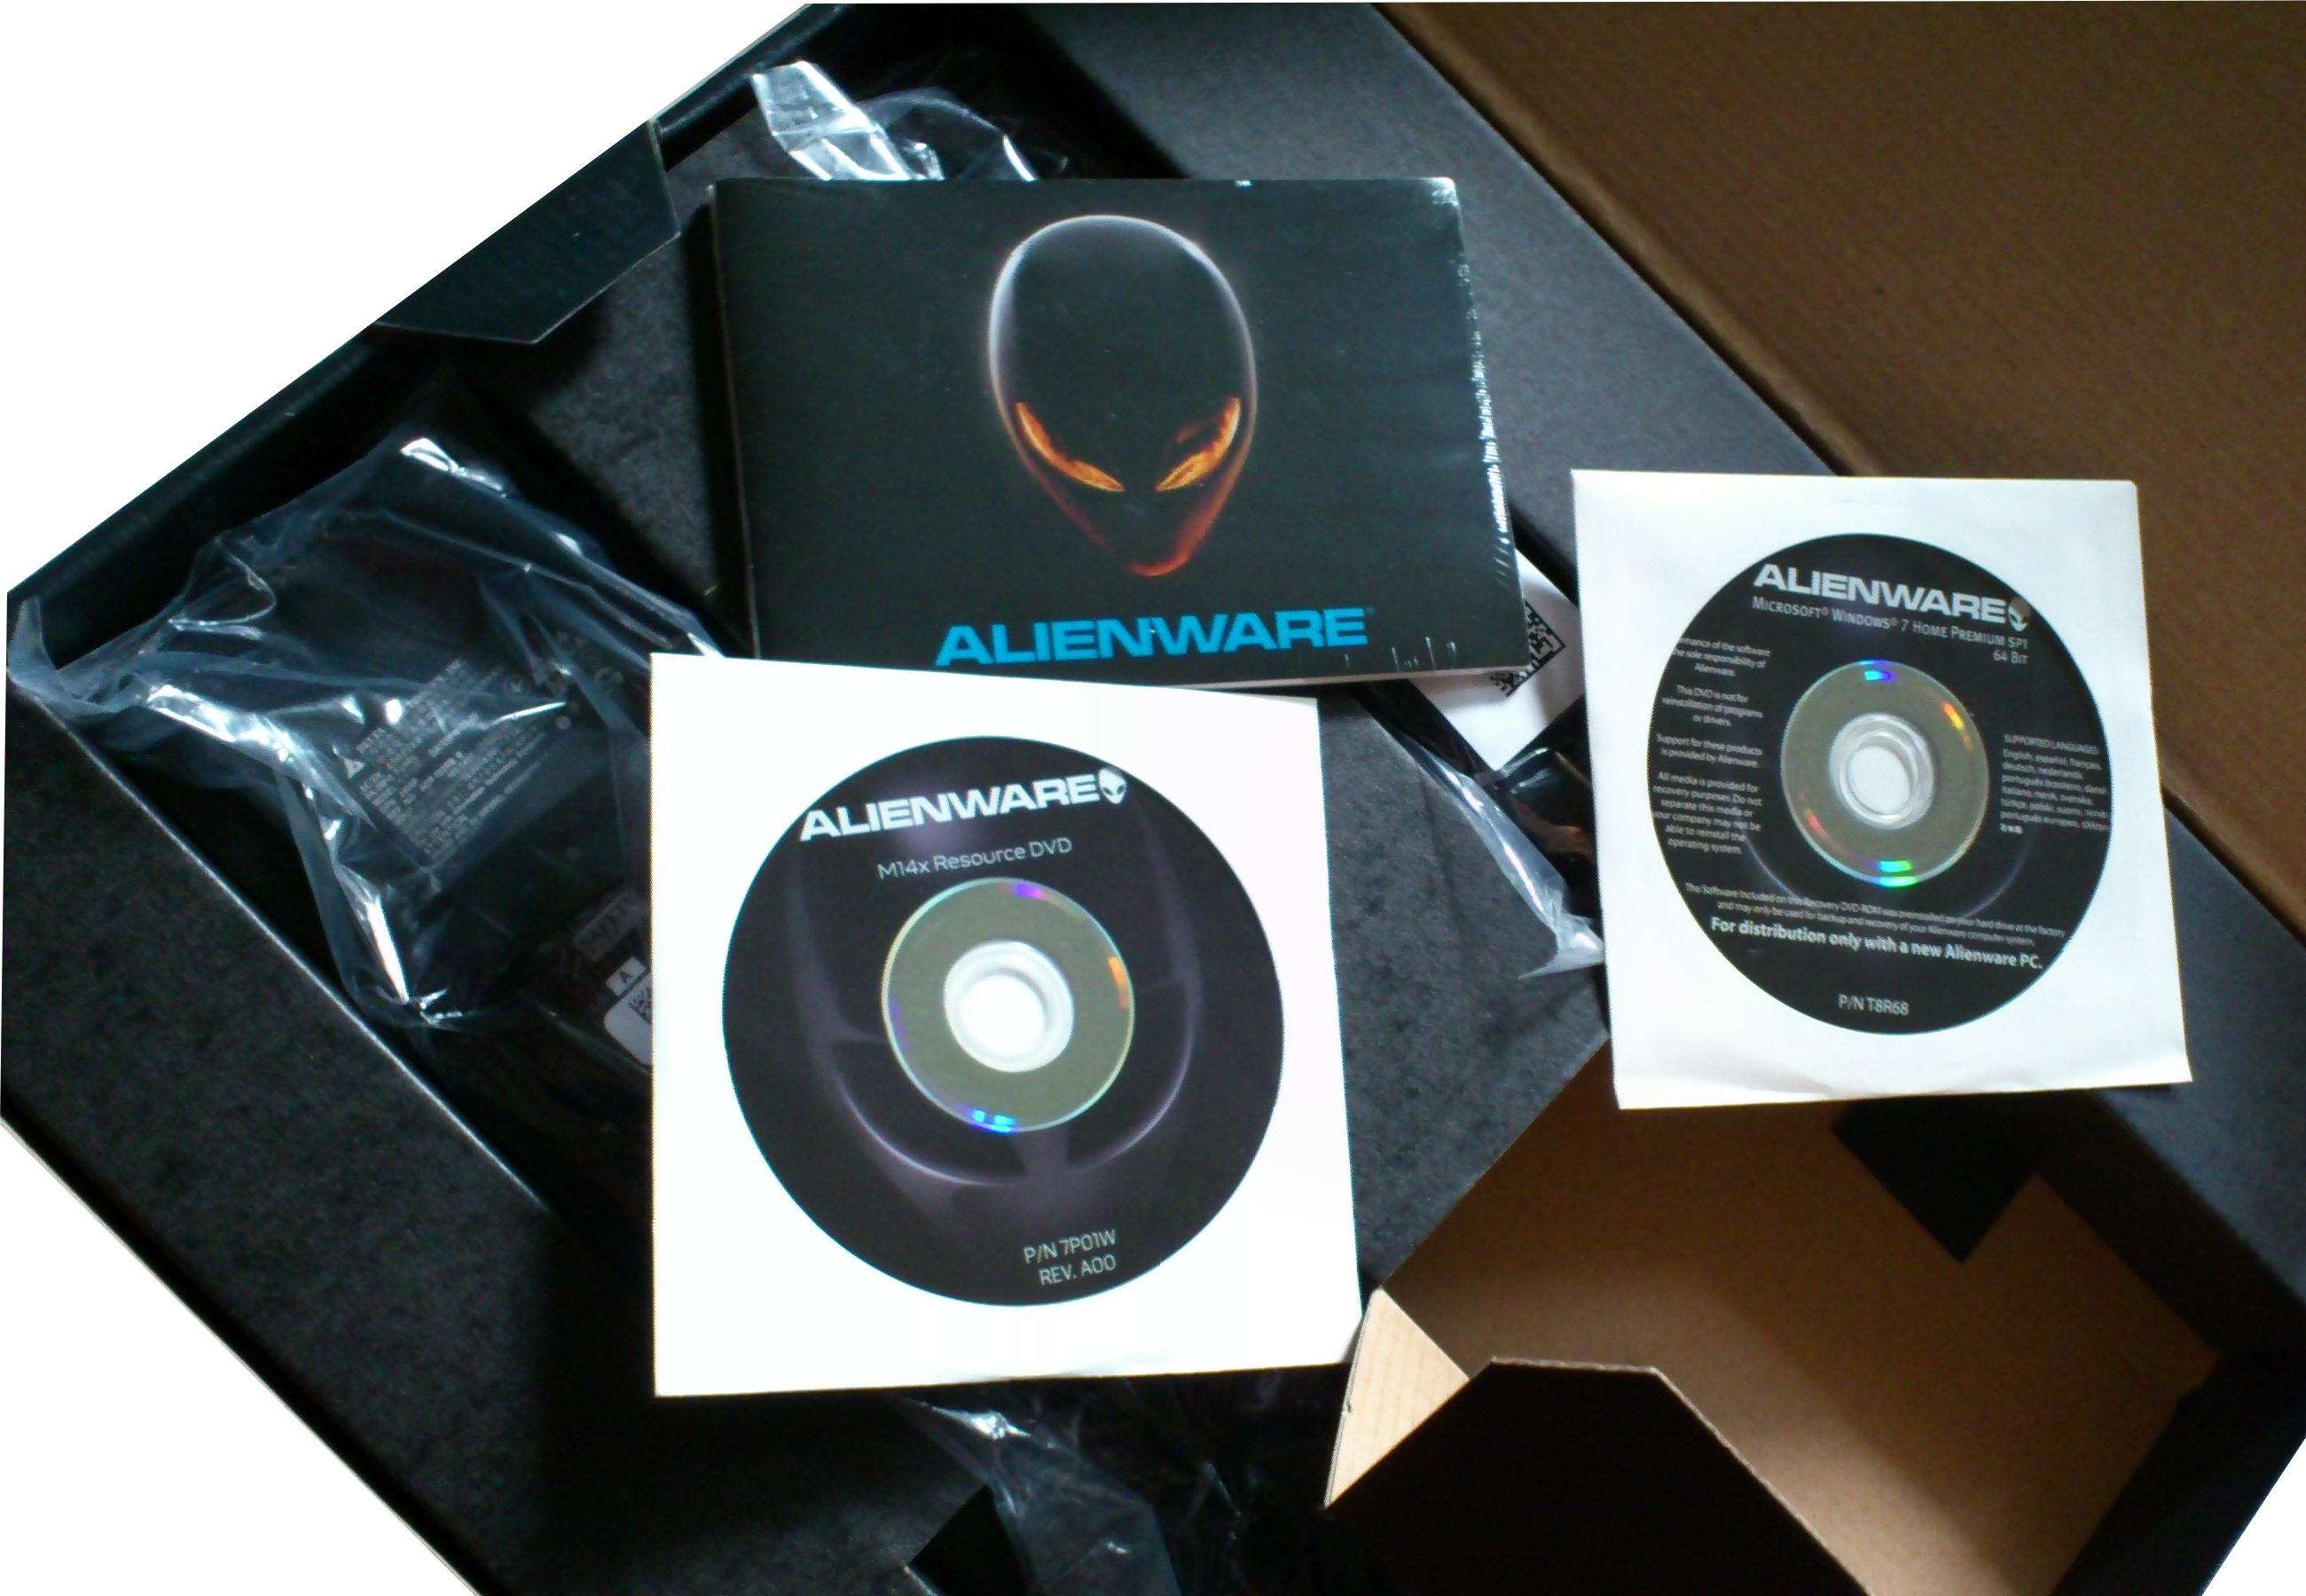 The inner box also holds the Resource and OS DVDs, and the Manual